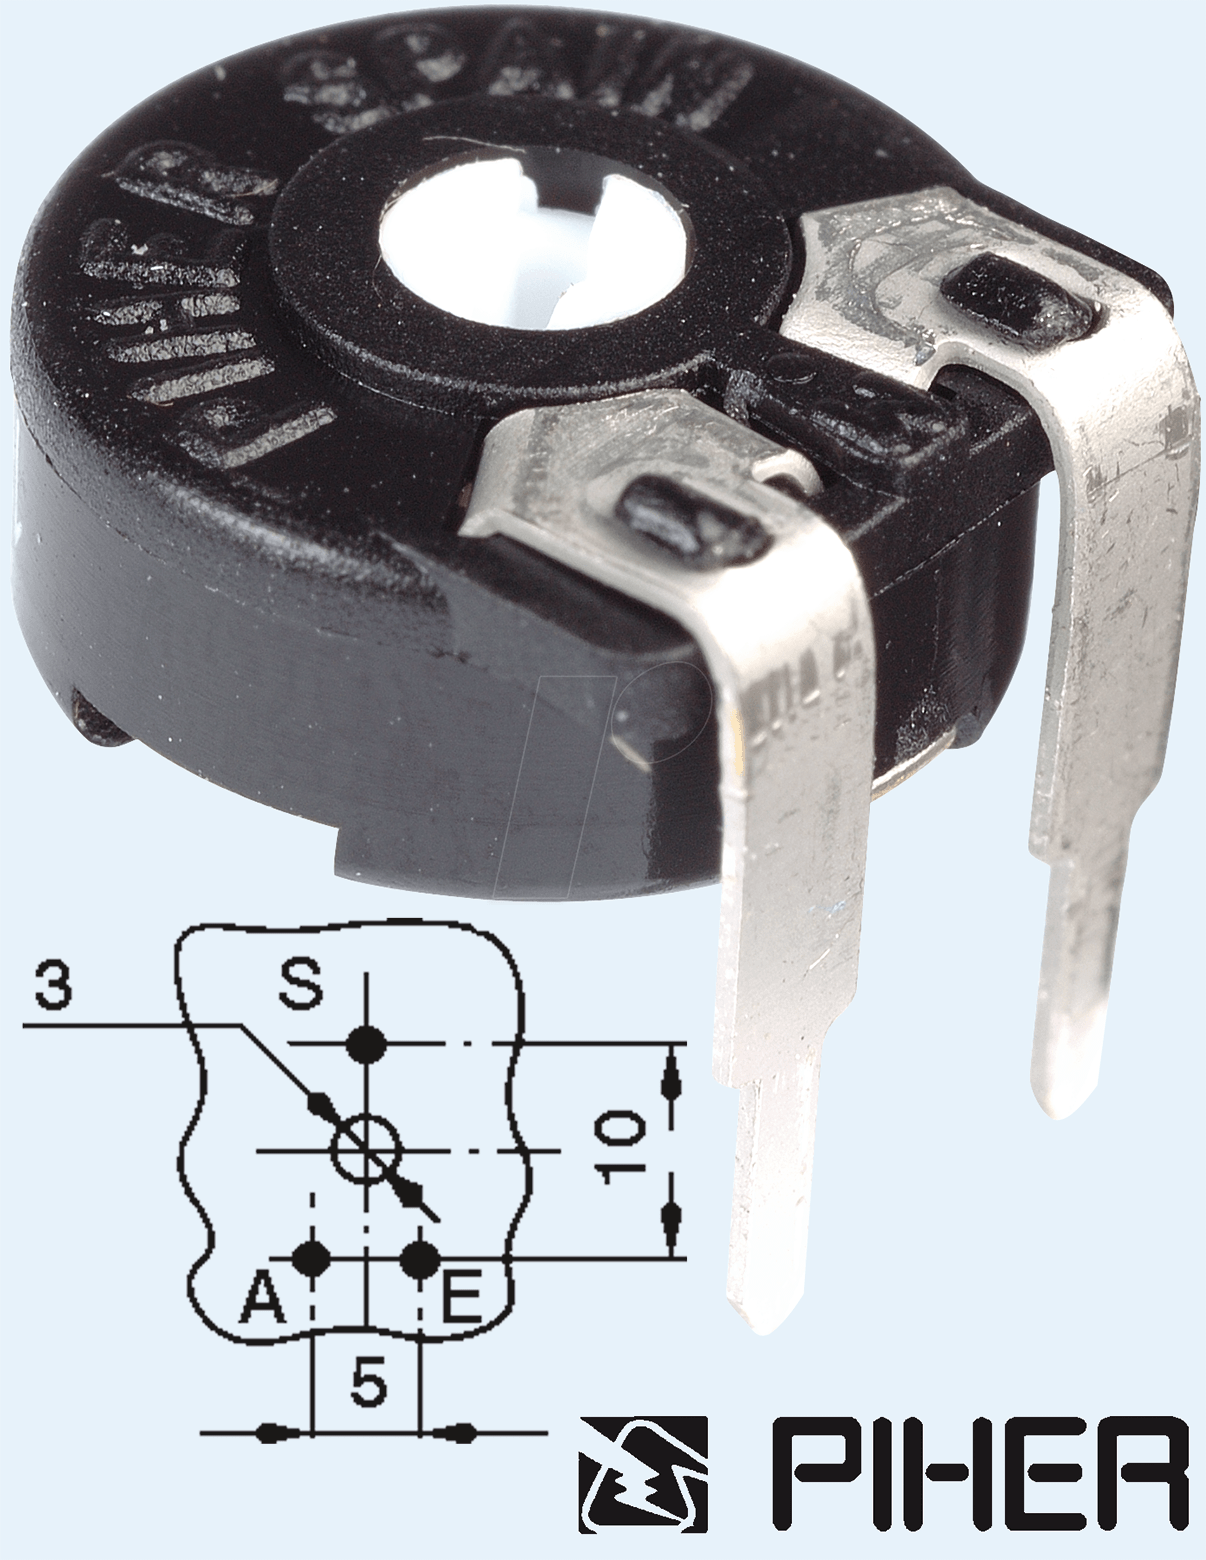 PIHER PT 10-L 2,5K - Einstellpotentiometer, liegend, 10mm, 2,5 K-Ohm